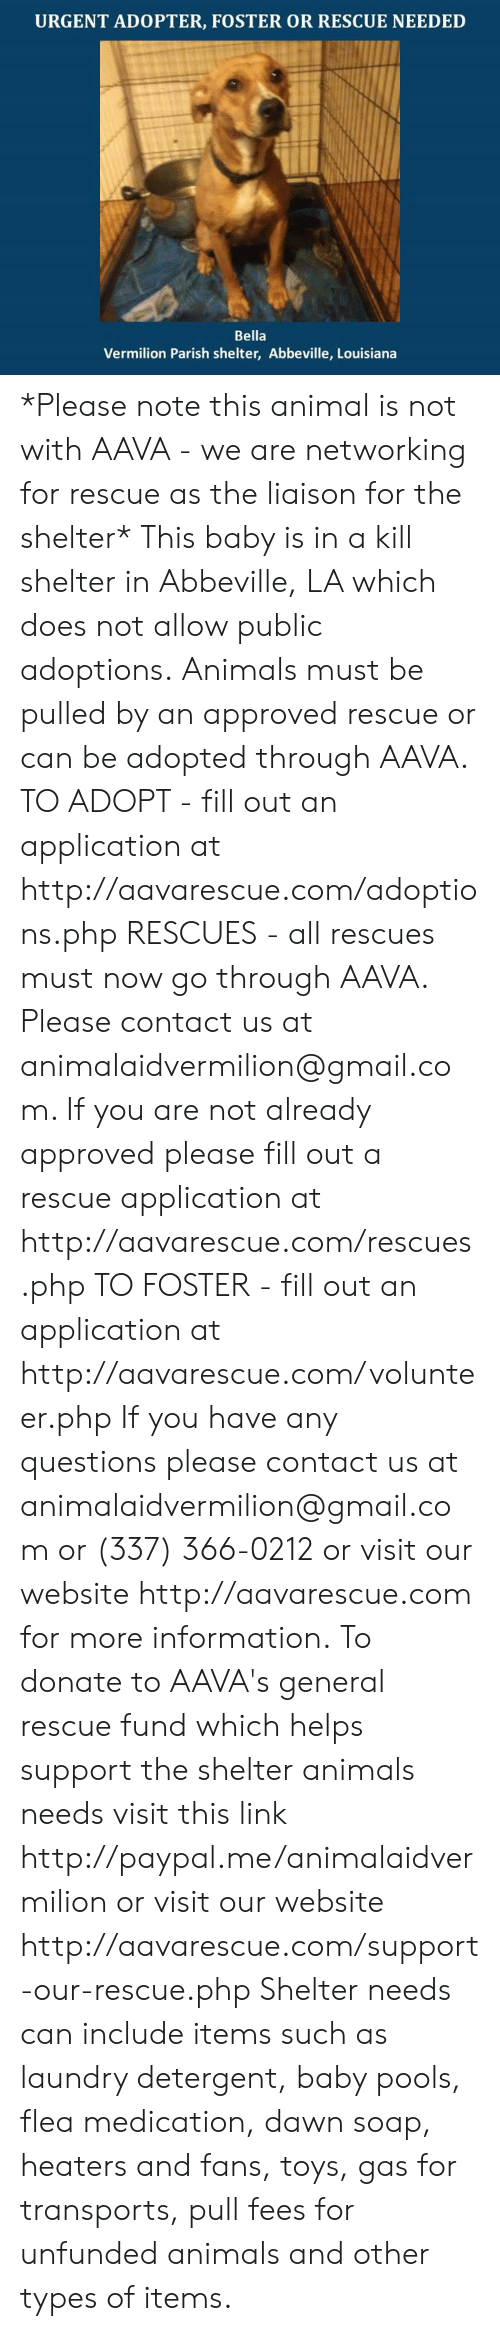 Animals, Laundry, and Memes: URGENT ADOPTER, FOSTER OR RESCUE NEEDED  Bella  Vermilion Parish shelter, Abbeville, Louisiana *Please note this animal is not with AAVA - we are networking for rescue as the liaison for the shelter* This baby is in a kill shelter in Abbeville, LA which does not allow public adoptions. Animals must be pulled by an approved rescue or can be adopted through AAVA.  TO ADOPT - fill out an application at http://aavarescue.com/adoptions.php  RESCUES - all rescues must now go through AAVA. Please contact us at animalaidvermilion@gmail.com. If you are not already approved please fill out a rescue application at http://aavarescue.com/rescues.php  TO FOSTER - fill out an application at http://aavarescue.com/volunteer.php  If you have any questions please contact us at animalaidvermilion@gmail.com or (337) 366-0212 or visit our website http://aavarescue.com for more information.  To donate to AAVA's general rescue fund which helps support the shelter animals needs visit this link http://paypal.me/animalaidvermilion or visit our website http://aavarescue.com/support-our-rescue.php Shelter needs can include items such as laundry detergent, baby pools, flea medication, dawn soap, heaters and fans, toys, gas for transports, pull fees for unfunded animals and other types of items.